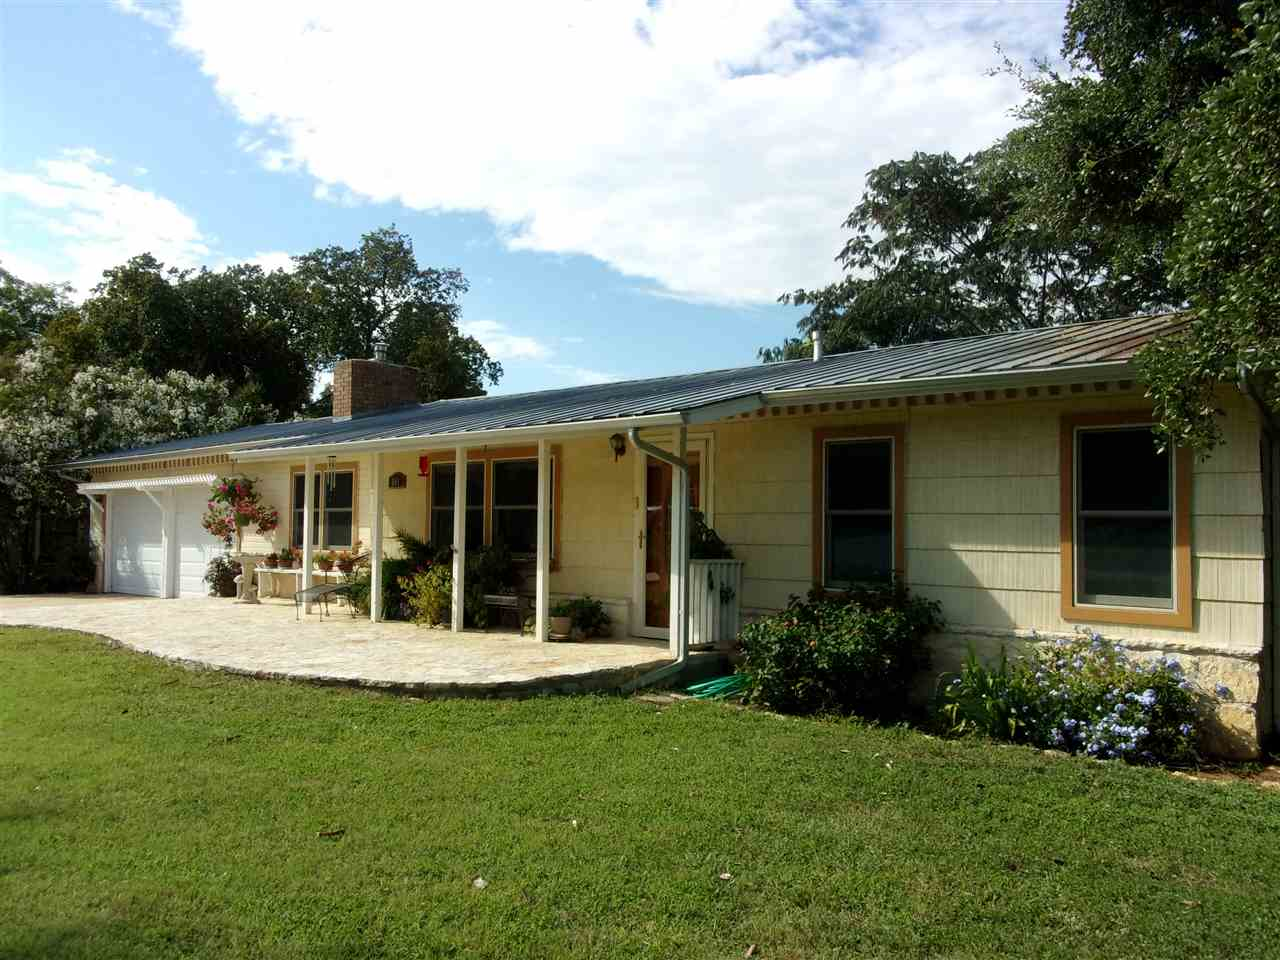 Additional photo for property listing at 601 E MAIN  Llano, Texas 78643 United States